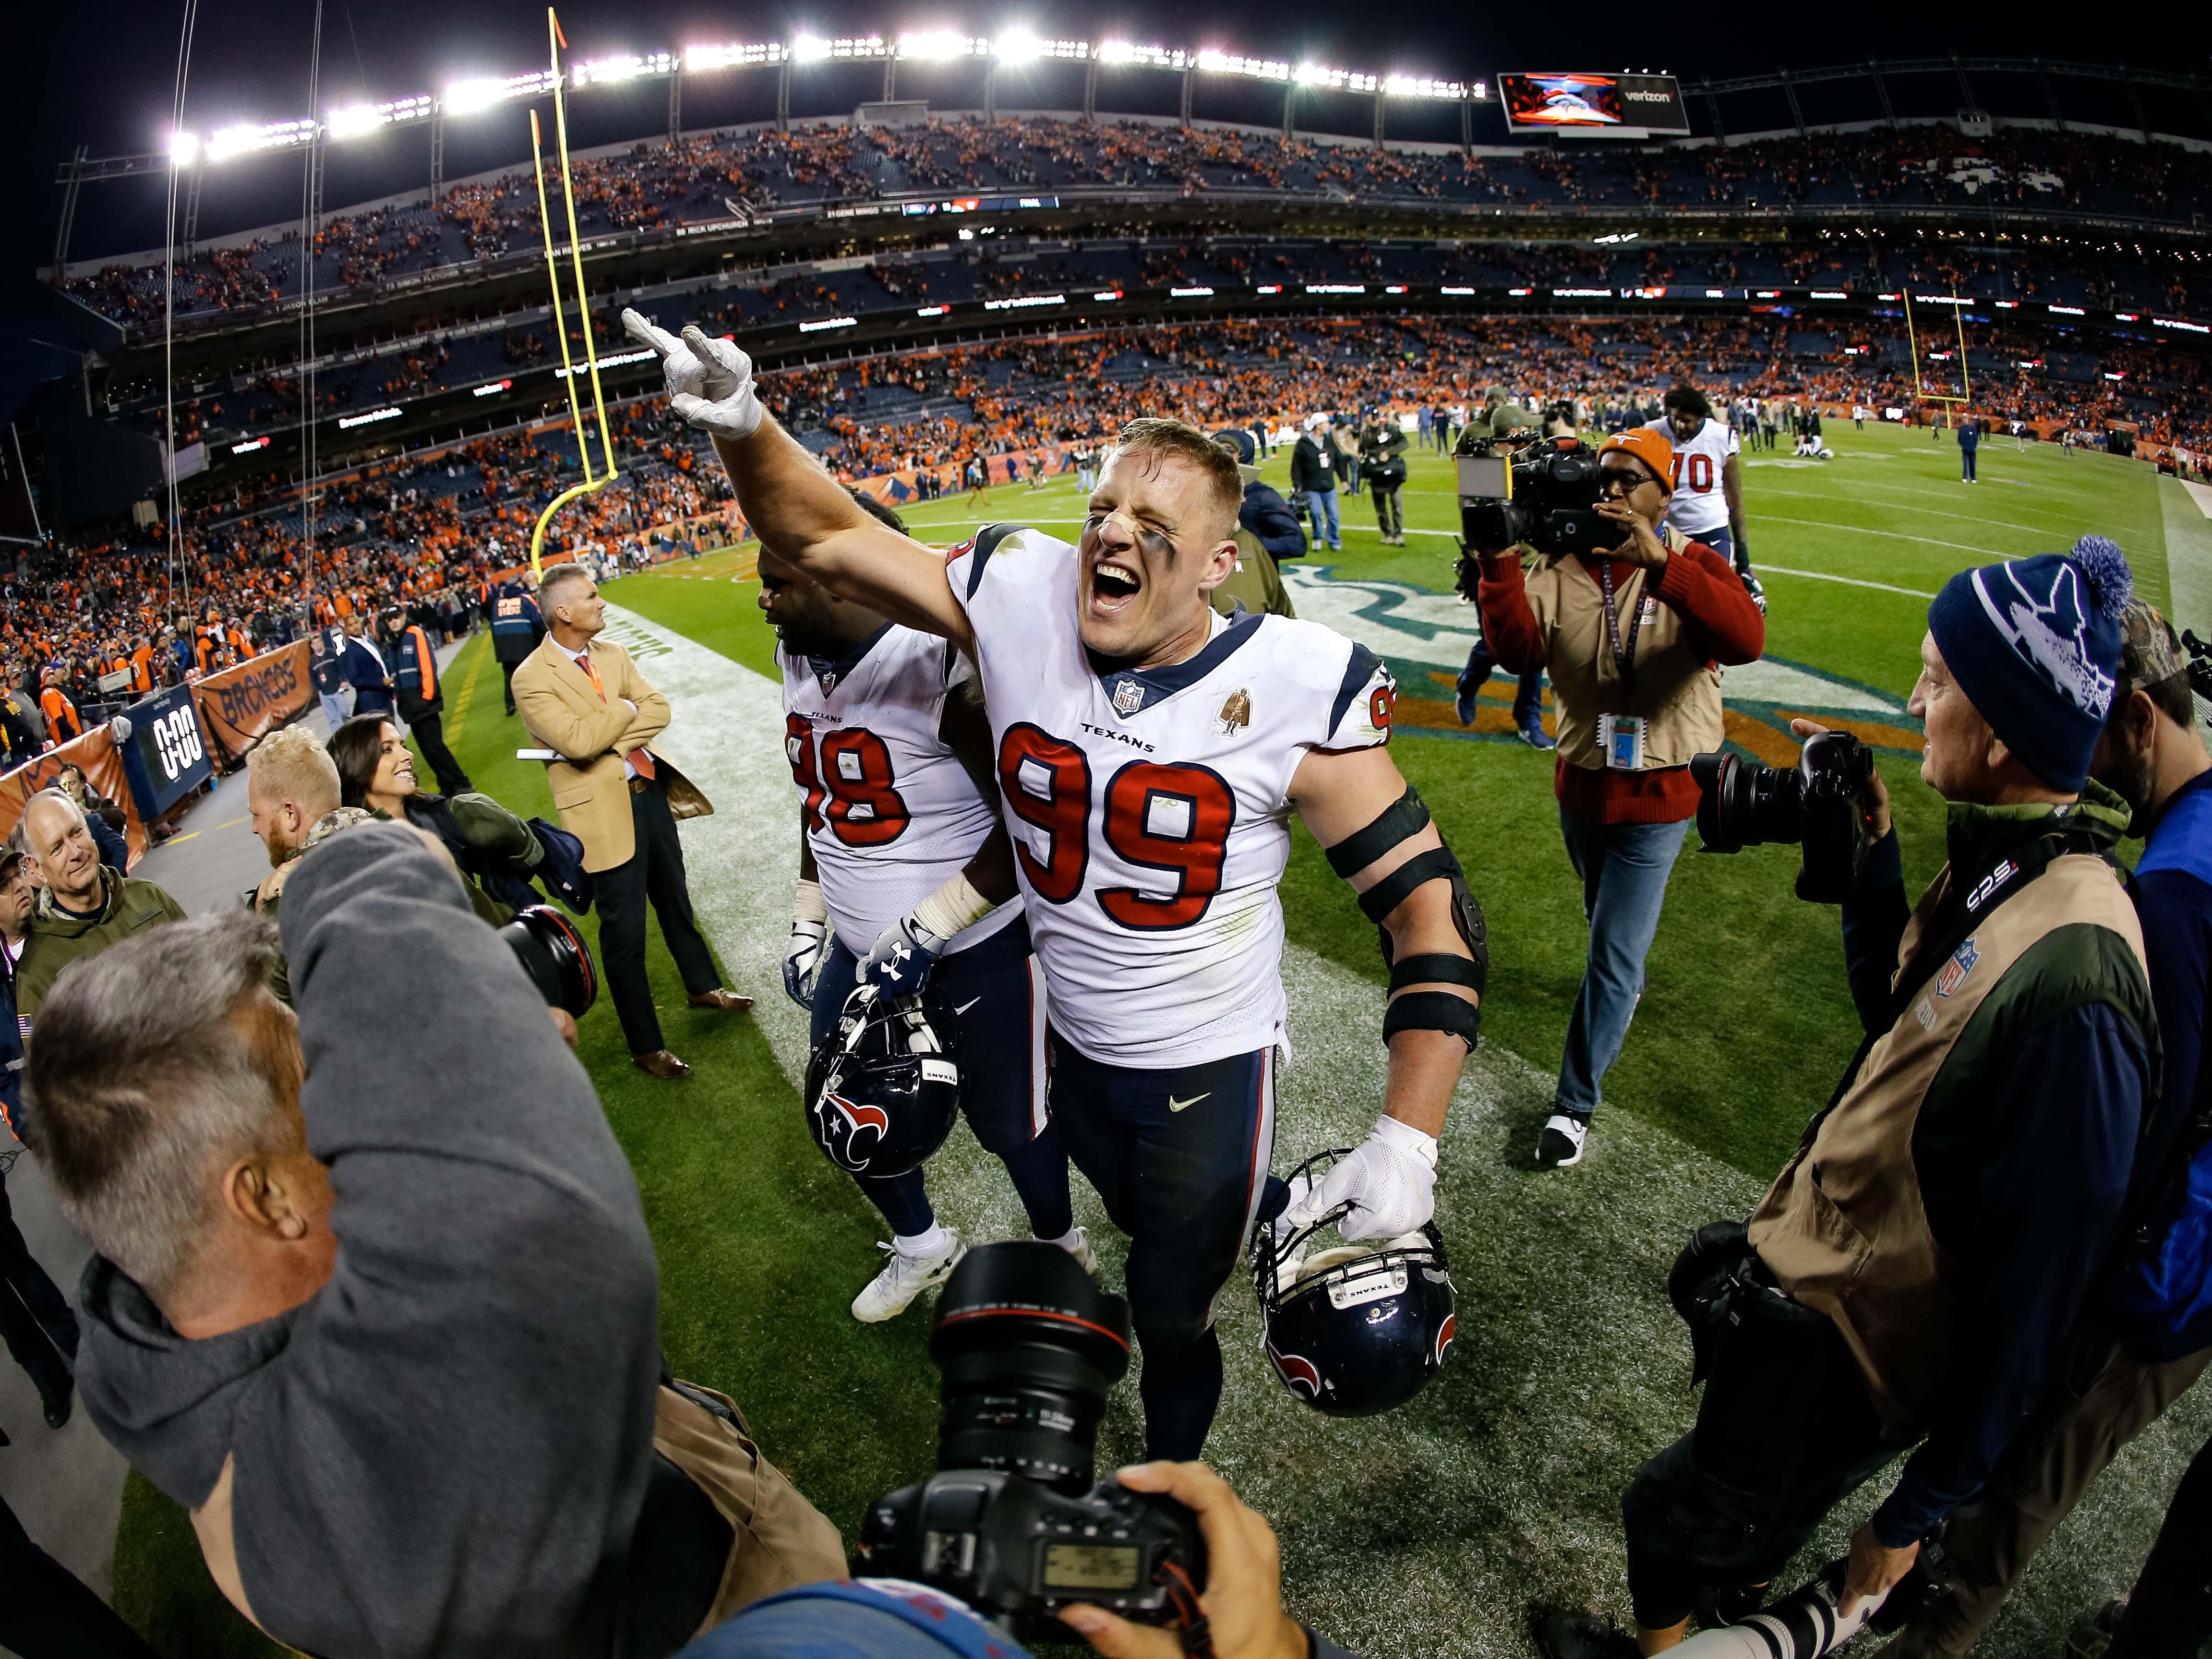 7. Texans (6-3) | Last game: Defeated the Broncos, 19-17 | Previous ranking: 7